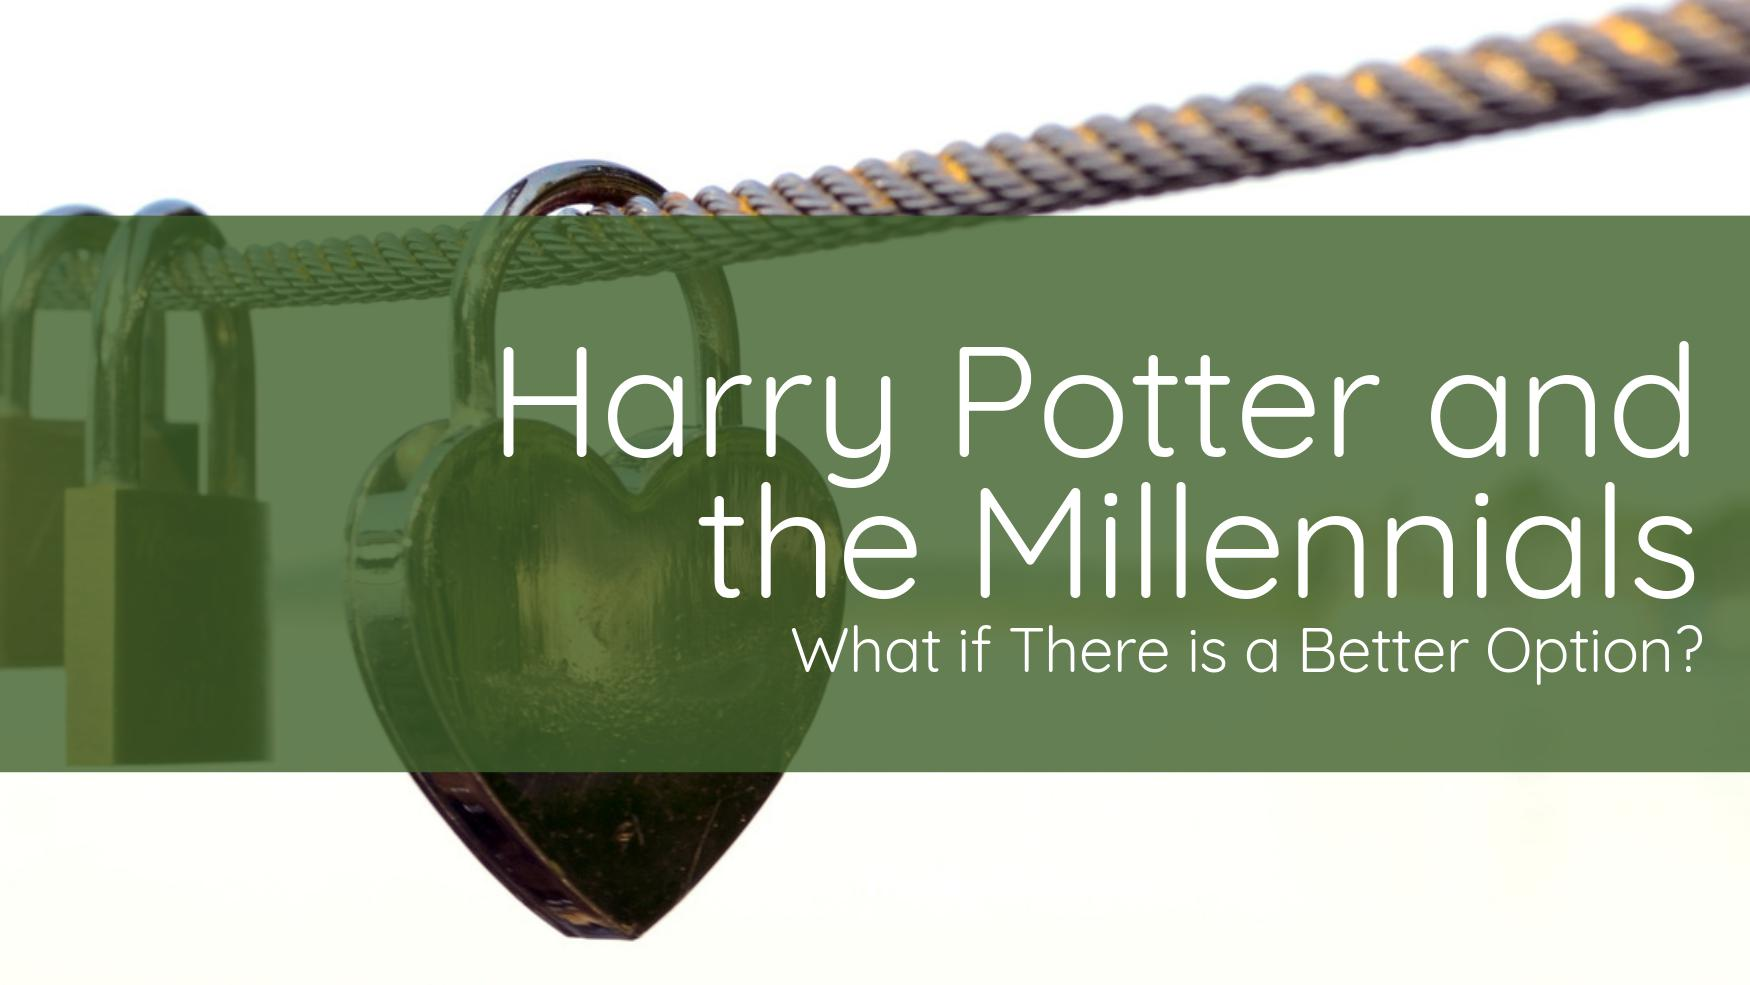 Harry Potter and the Millennials – But What if There is a Better Option?